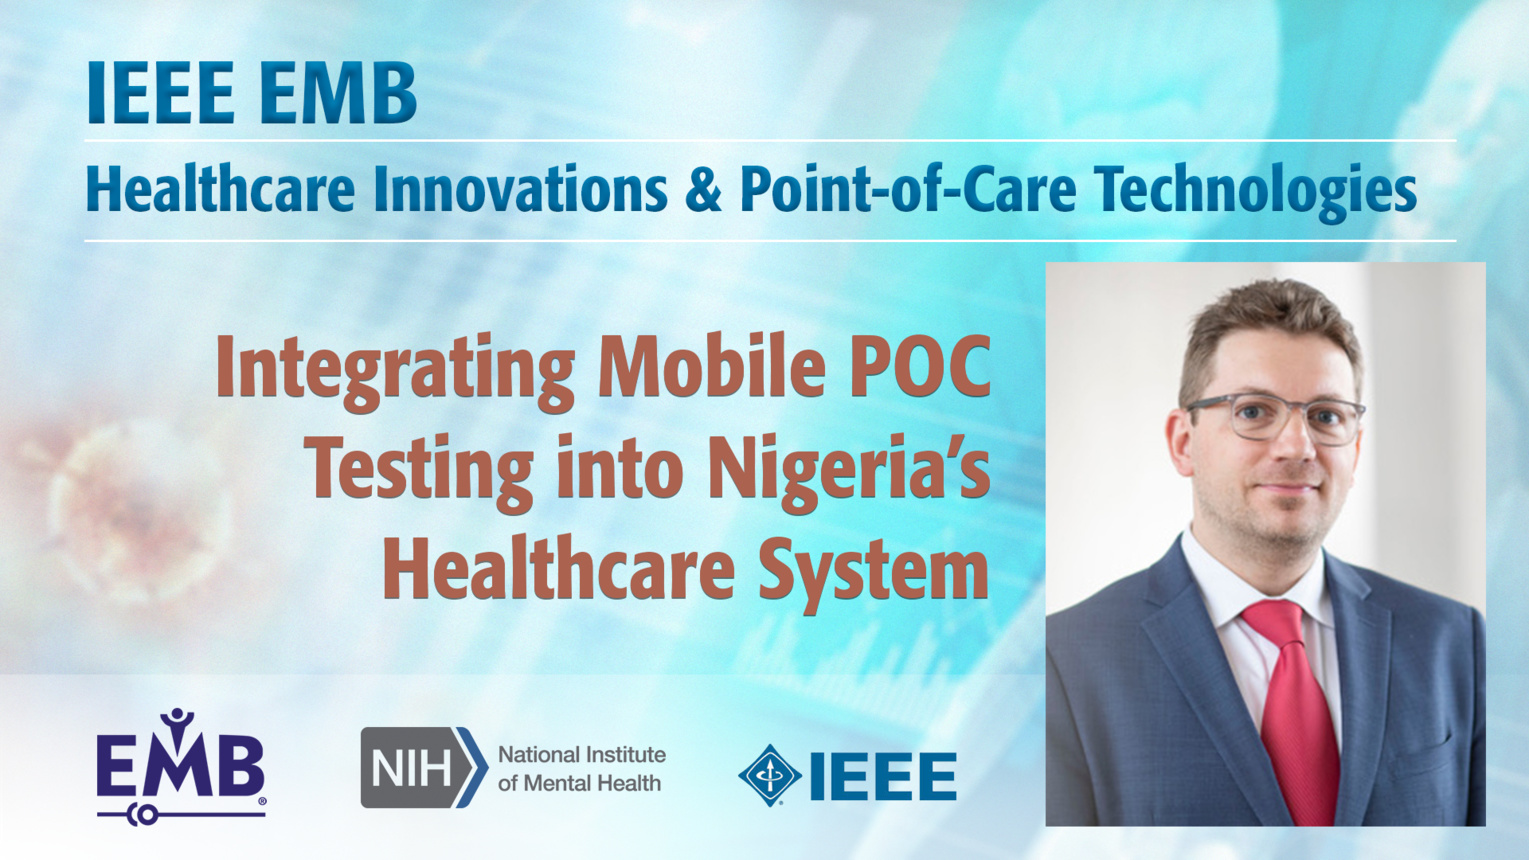 Integrating Mobile POC Testing into Nigeria's Healthcare System - Umut Gurkan - IEEE EMBS at NIH, 2019